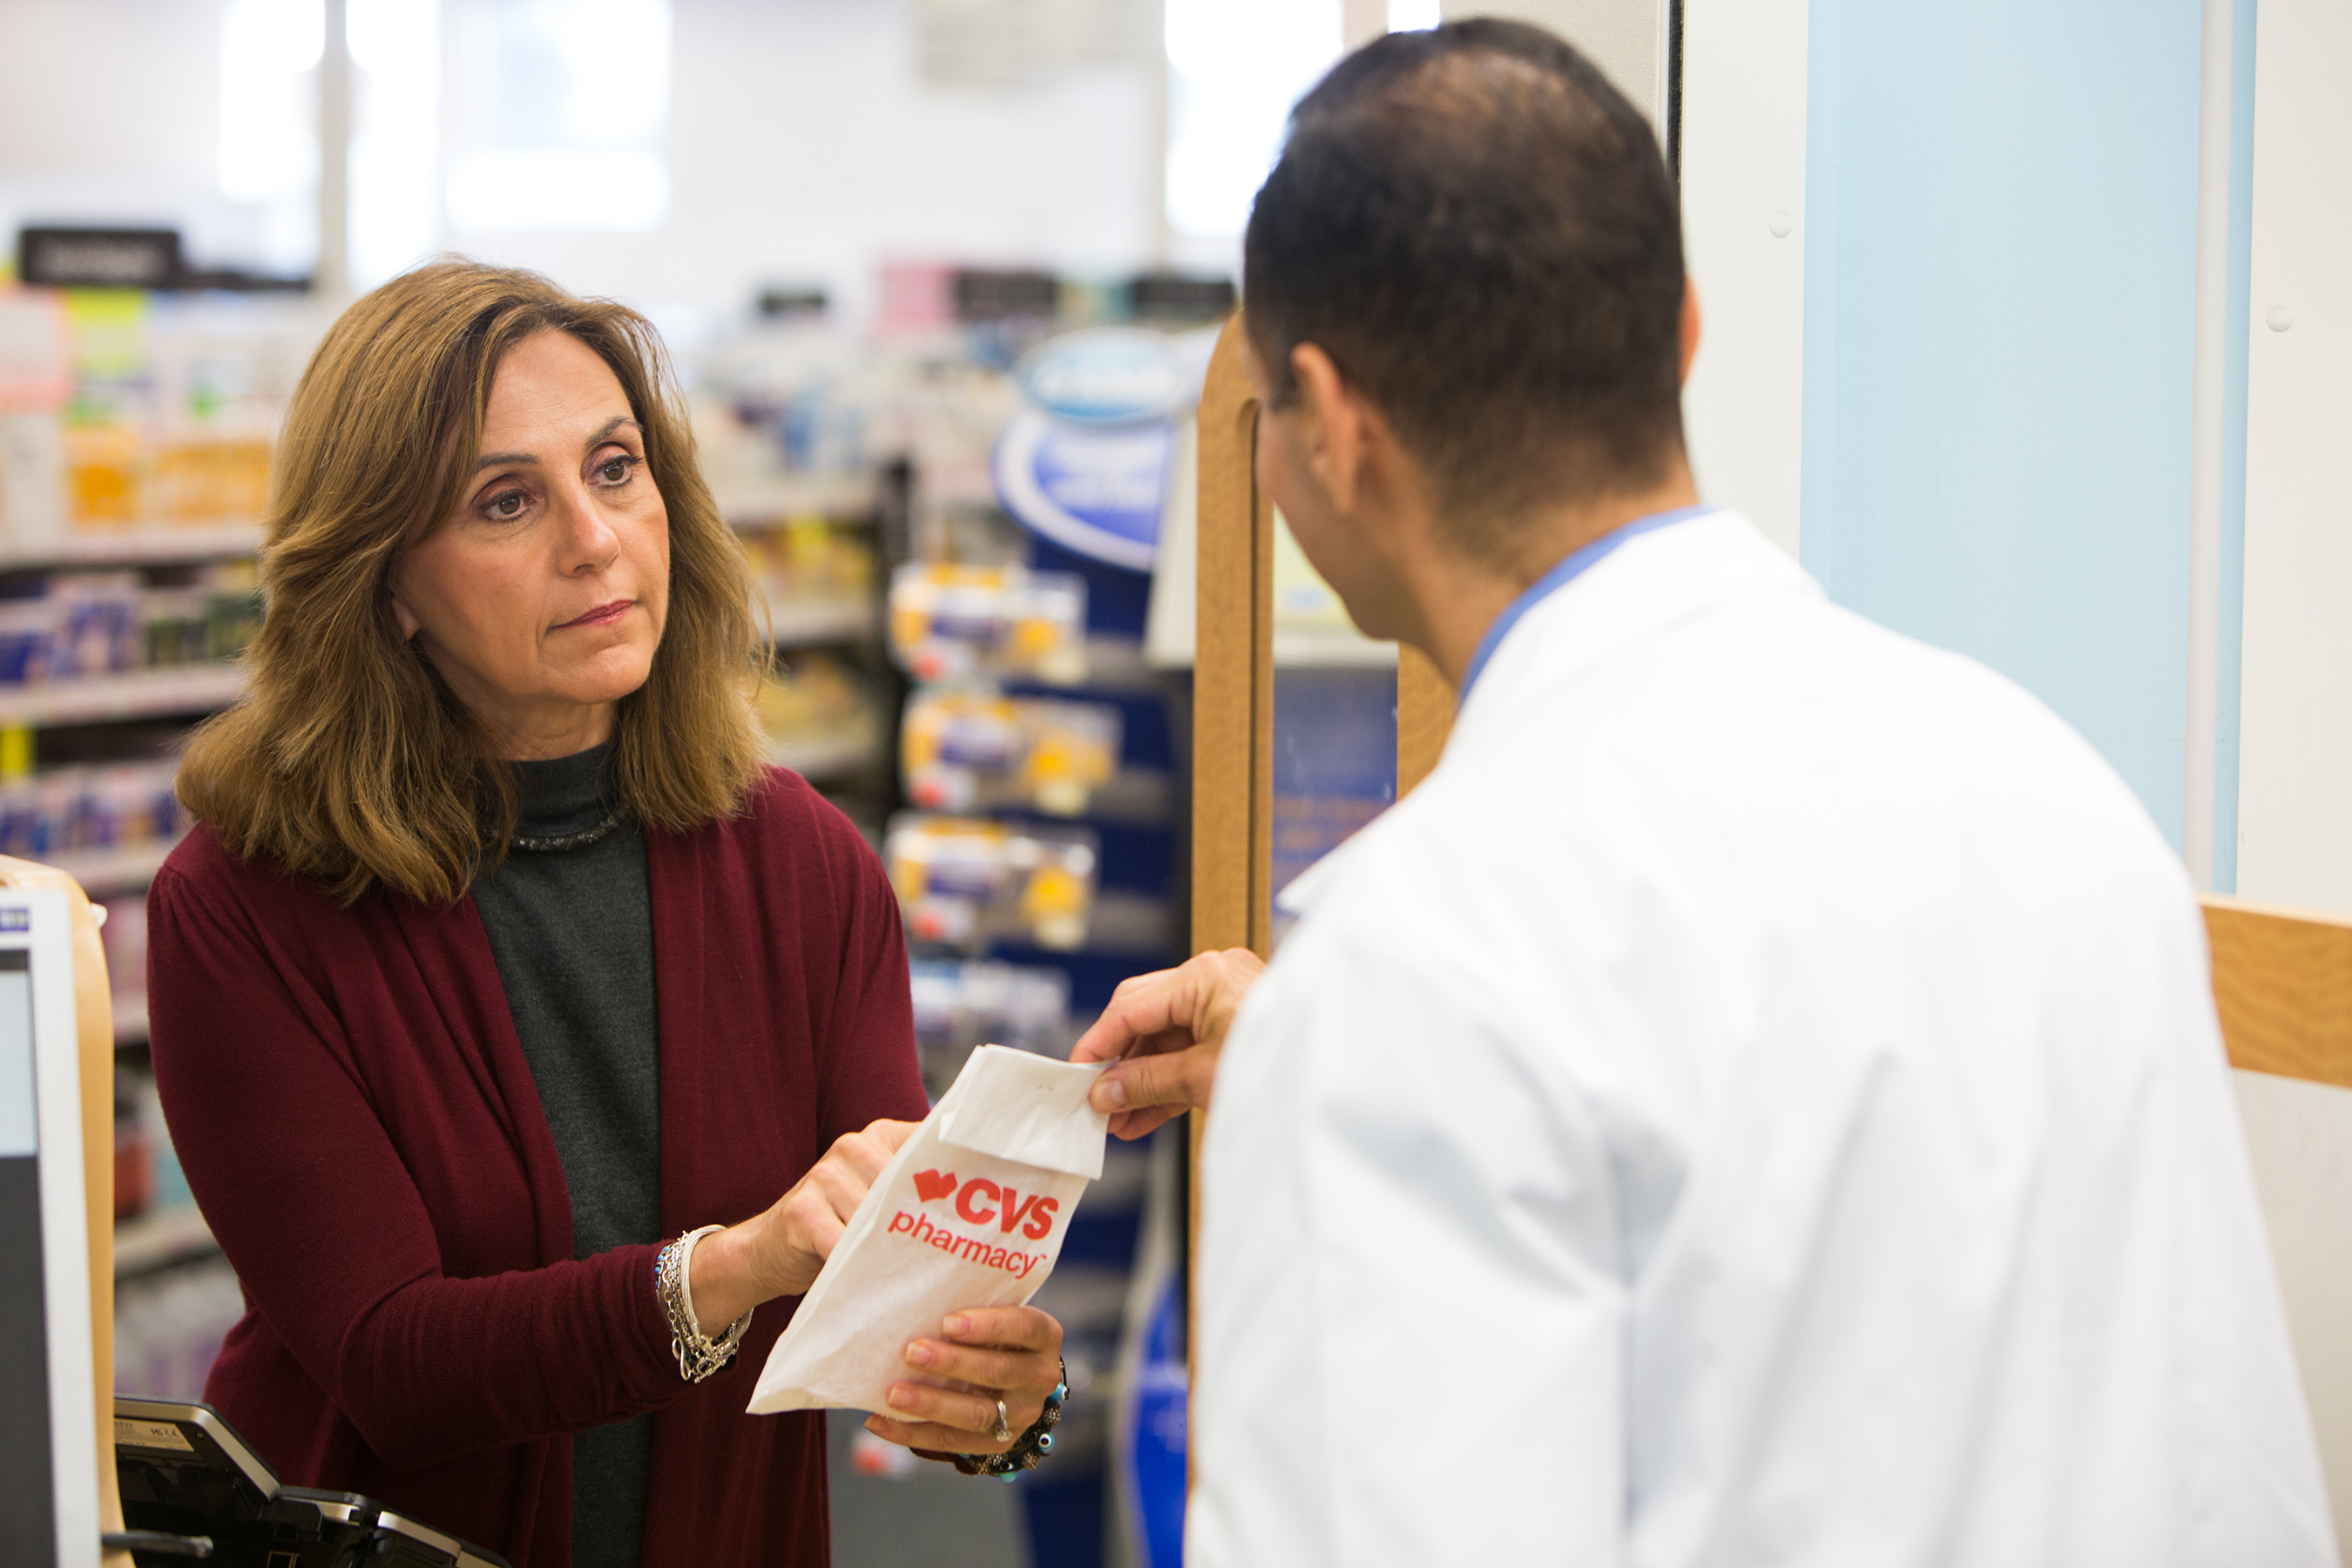 Pharmacist consults with patient